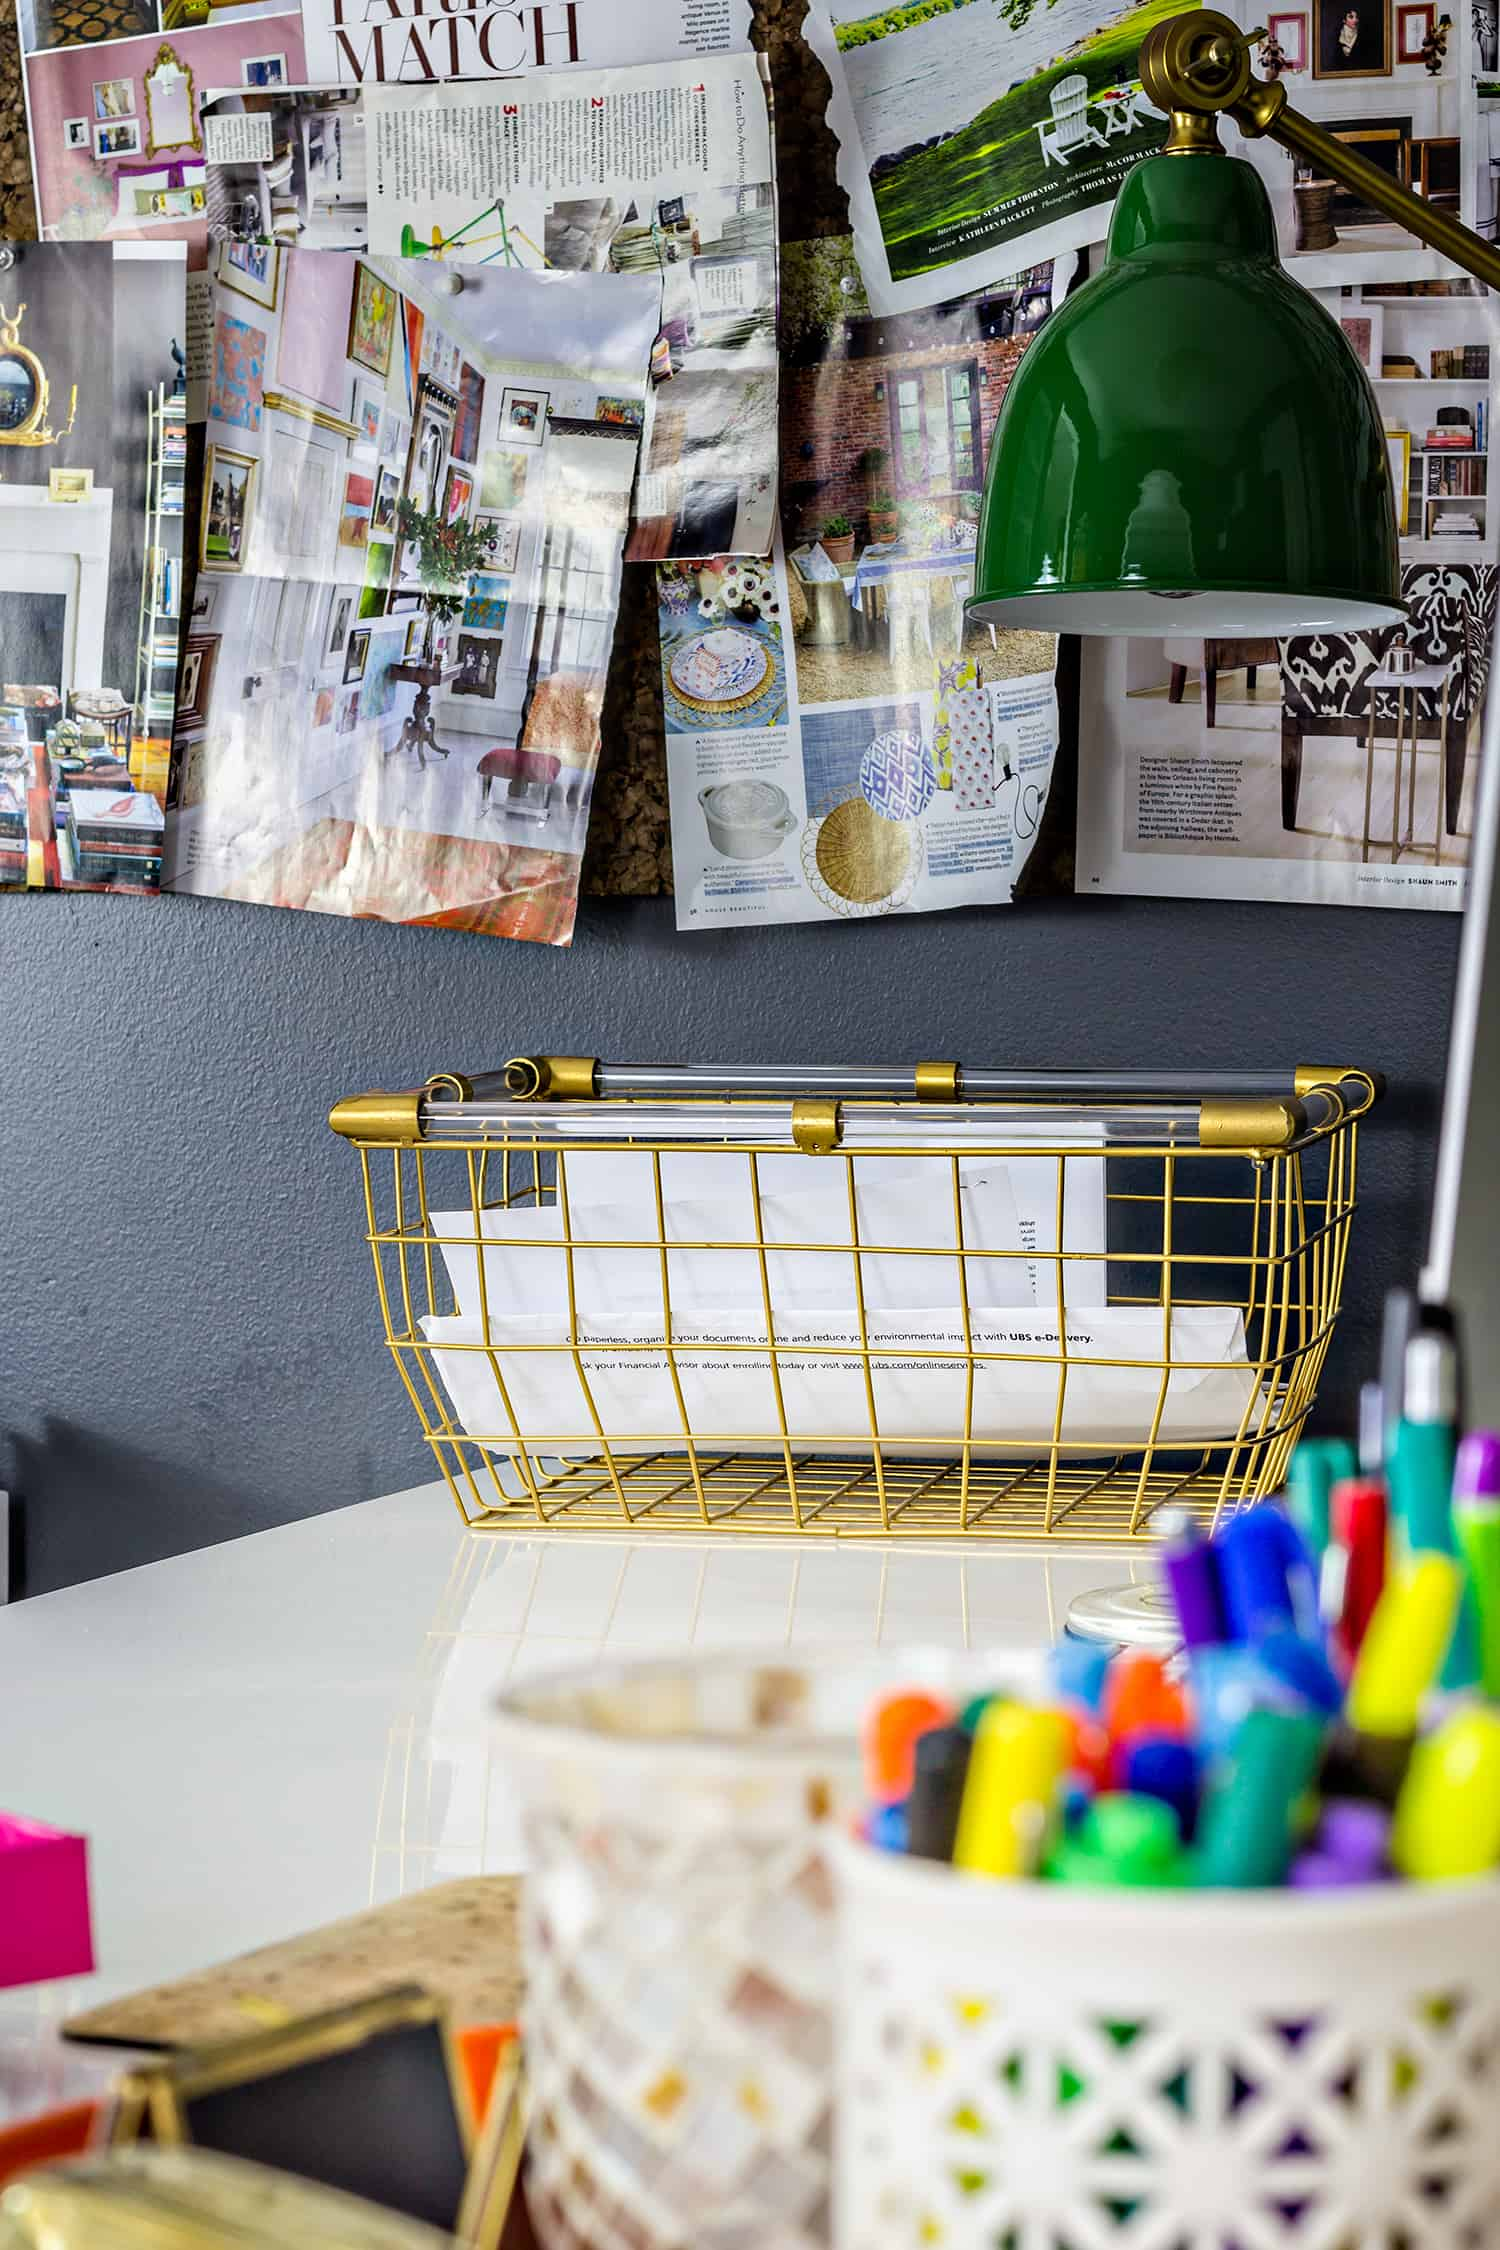 A grown up office update with back to school supplies and accessories that are budget friendly and stylish. #backtoschool #gotitatgordmans #ad #office